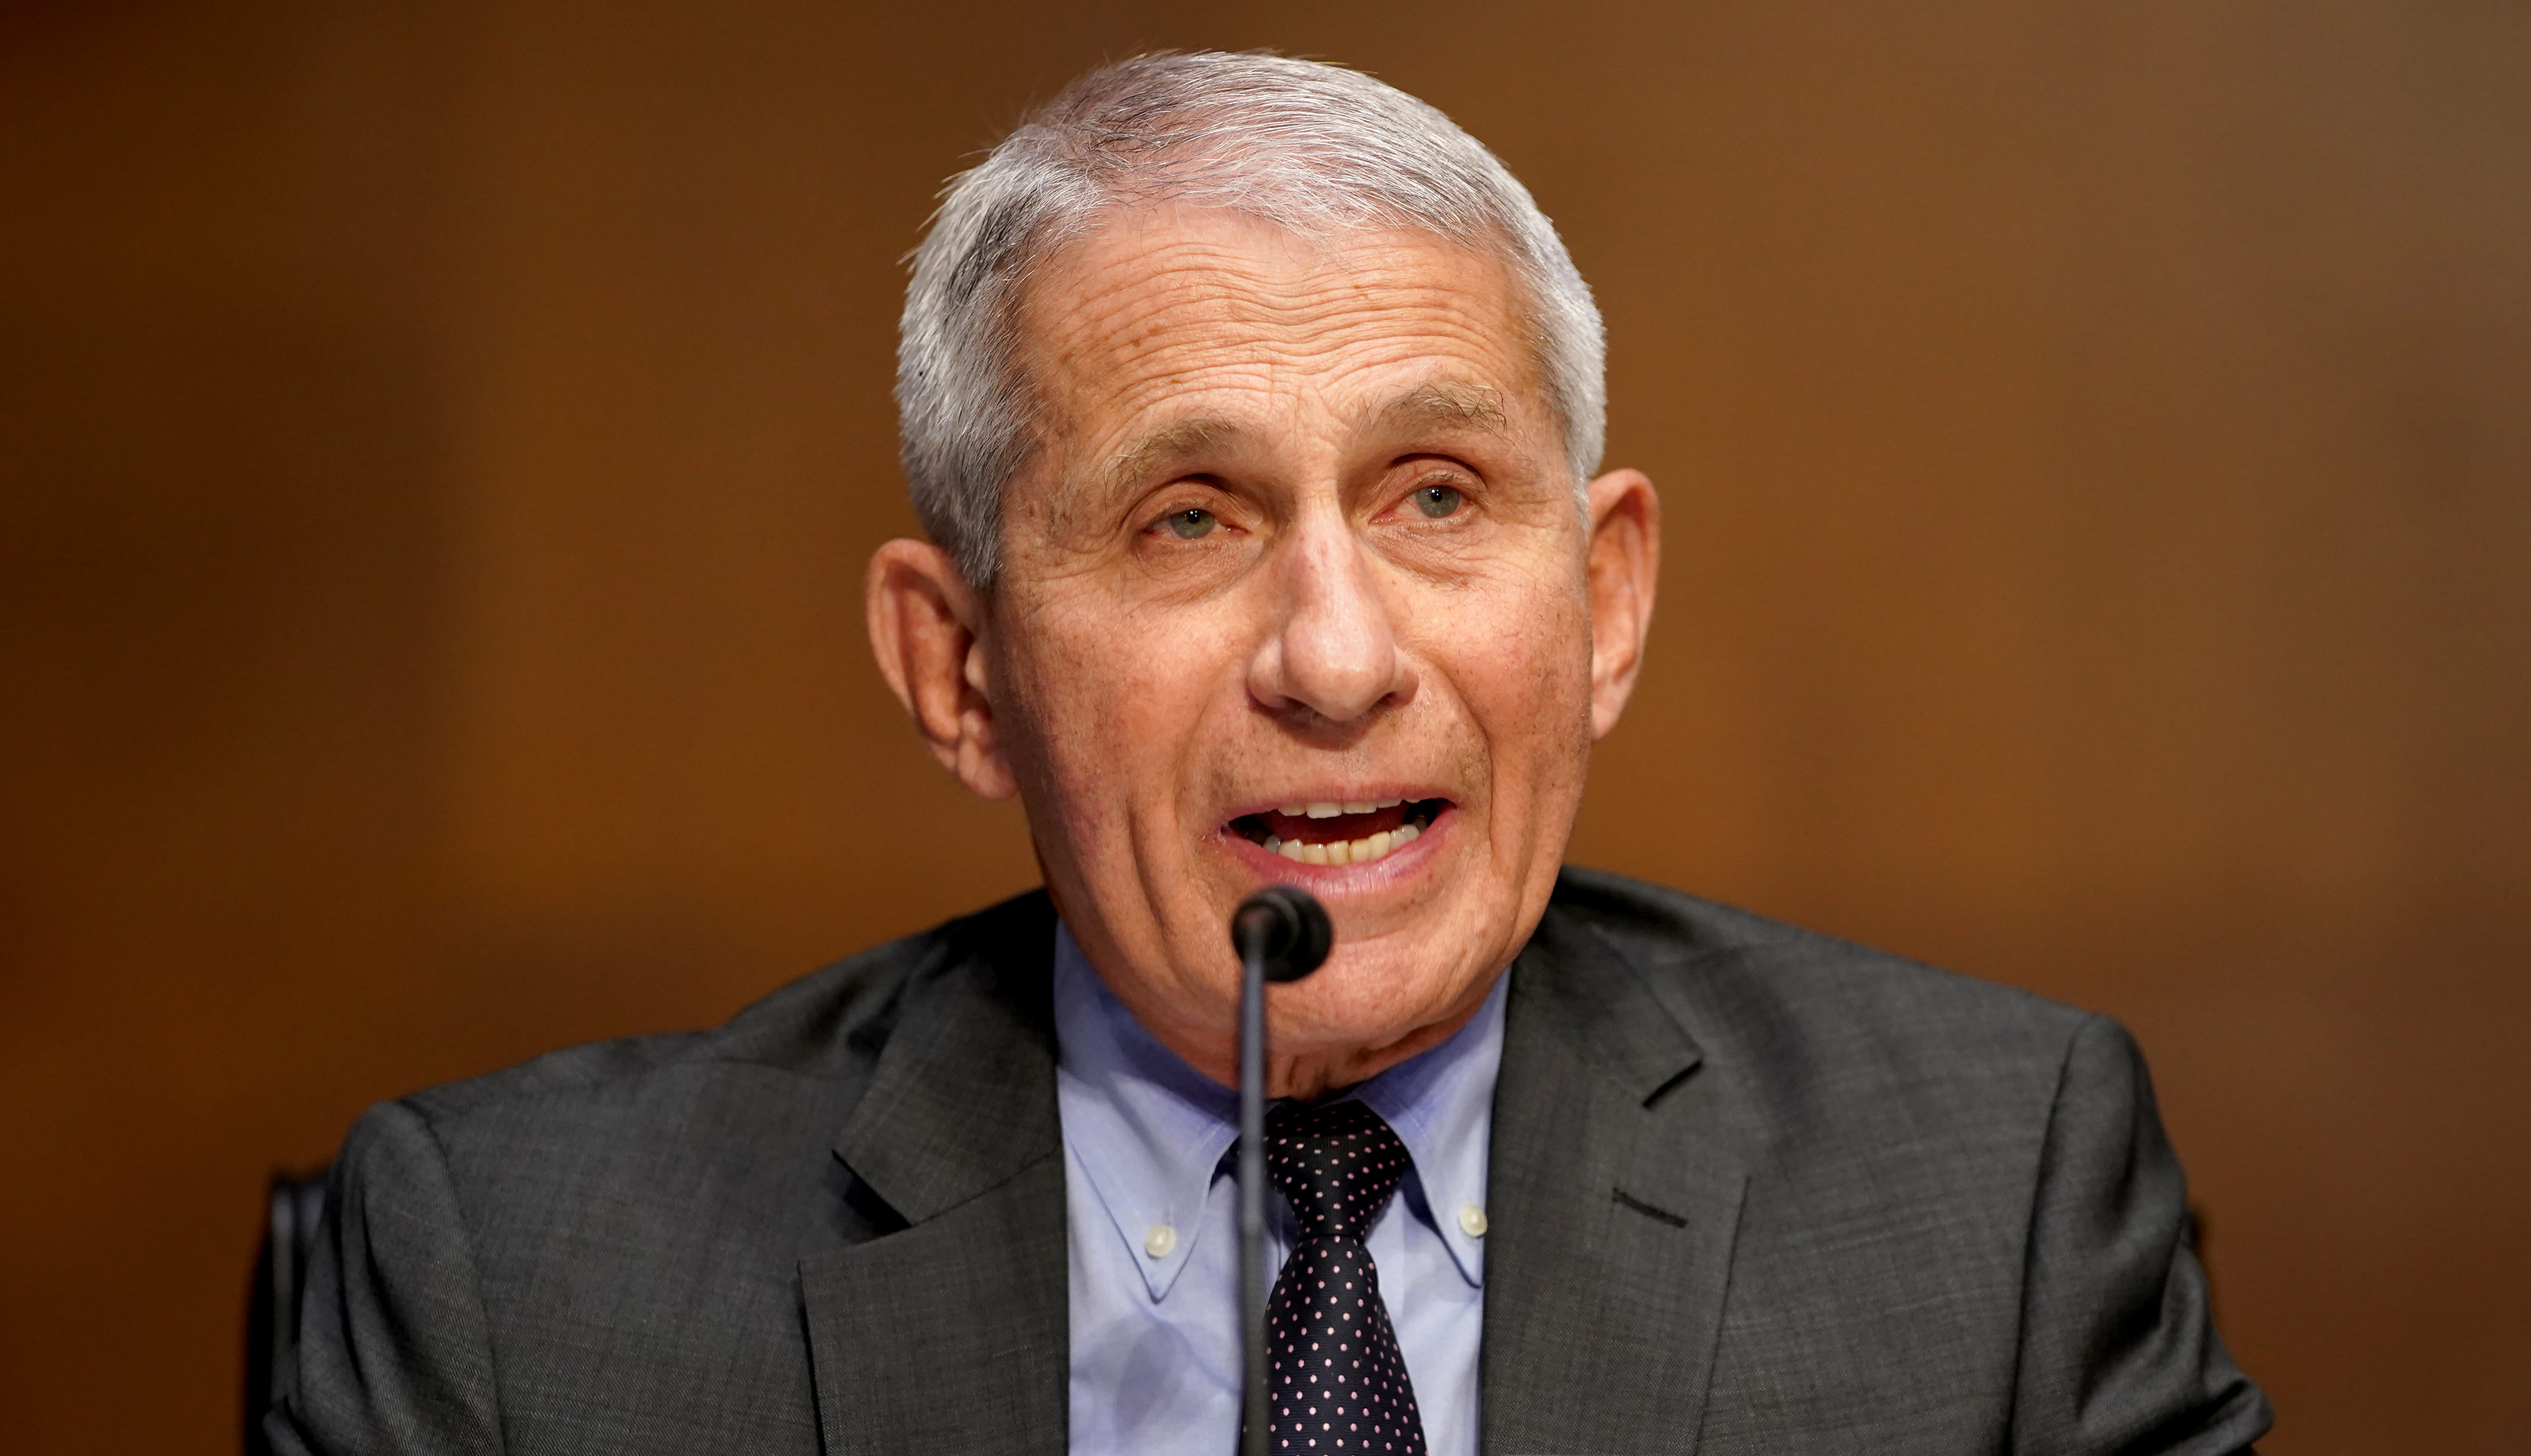 Dr. Anthony Fauci, director of the National Institute of Allergy and Infectious Diseases, speaks during a hearing on May 11 in Washington, DC.